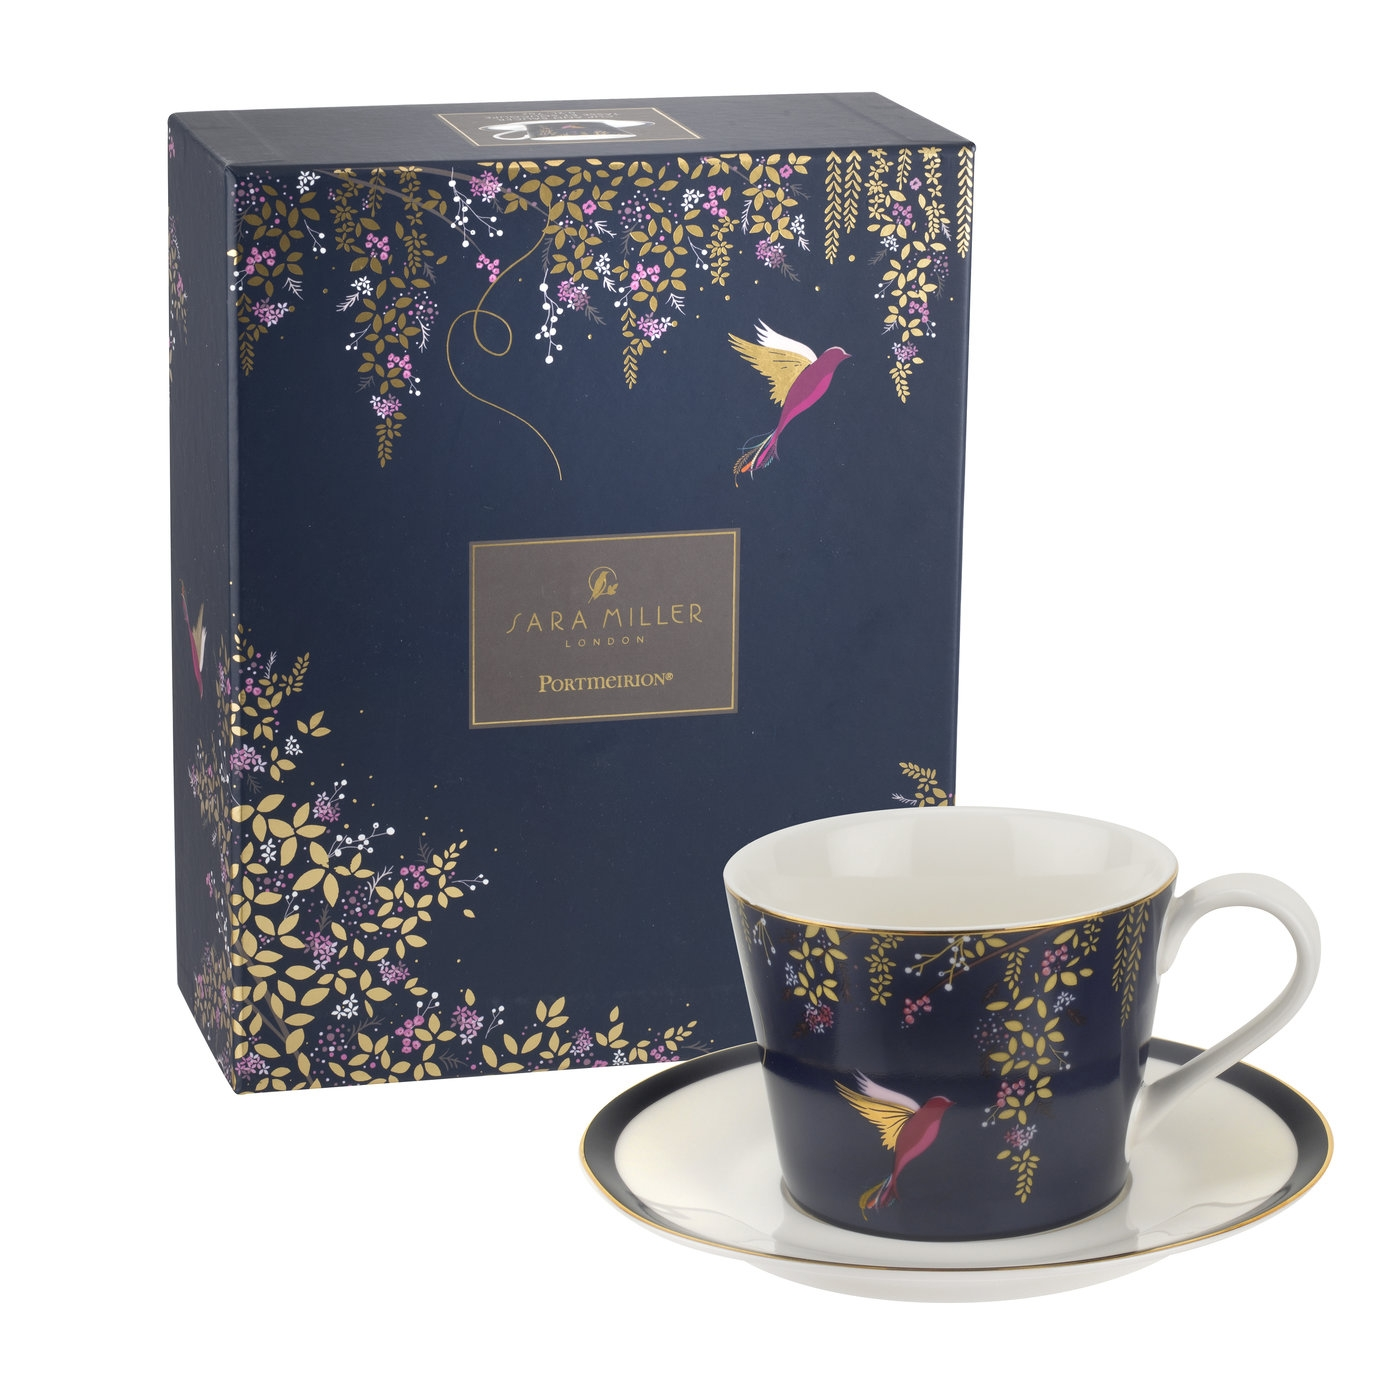 Sara Miller London for Portmeirion Chelsea Collection Tea Cup  image number 0